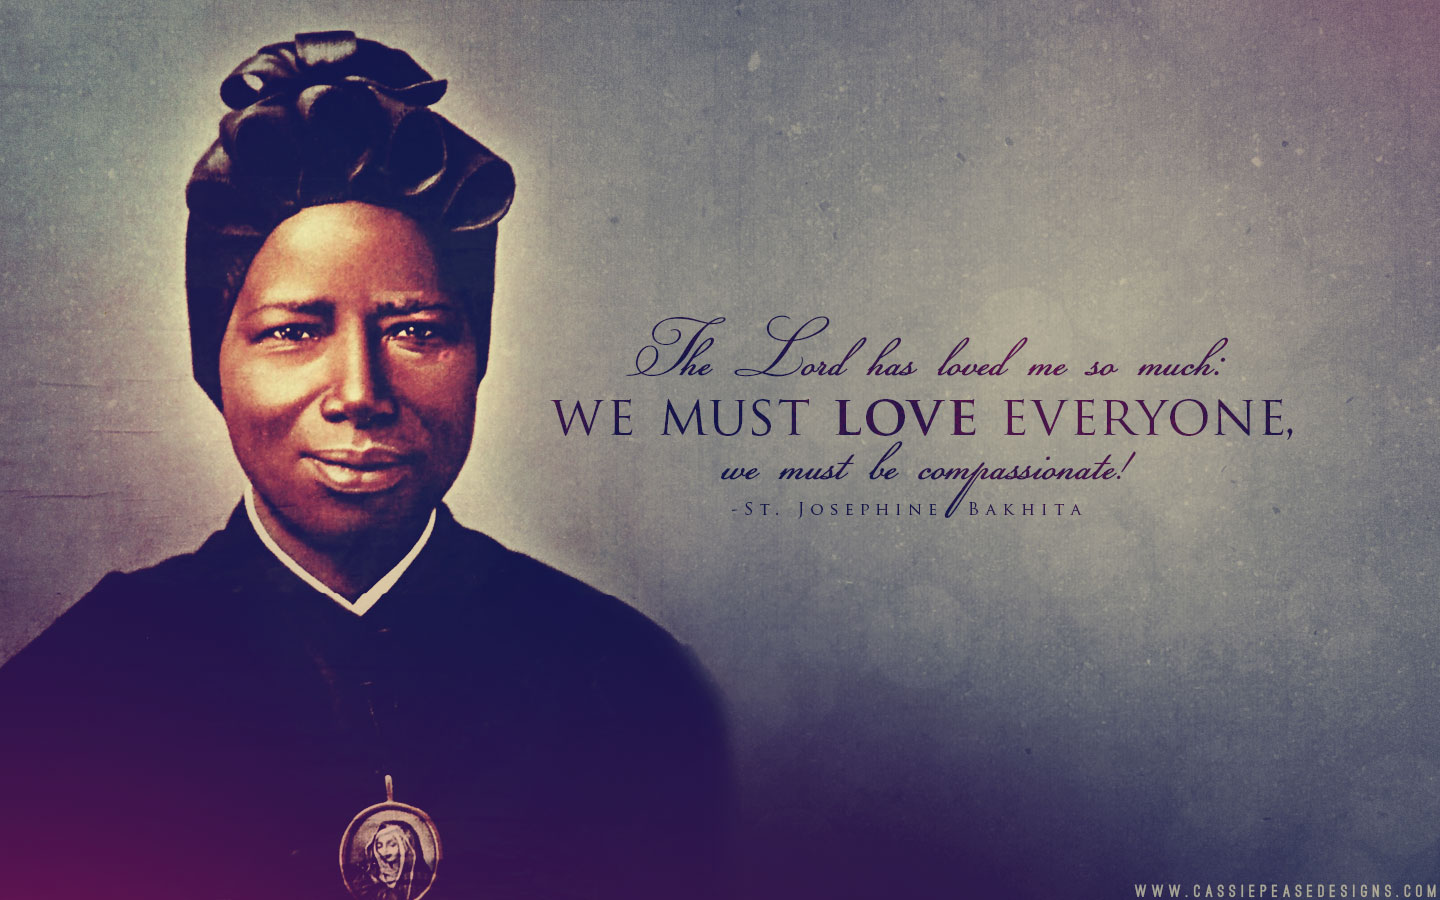 St. Josephine Bakhita Desktop Wallpaper